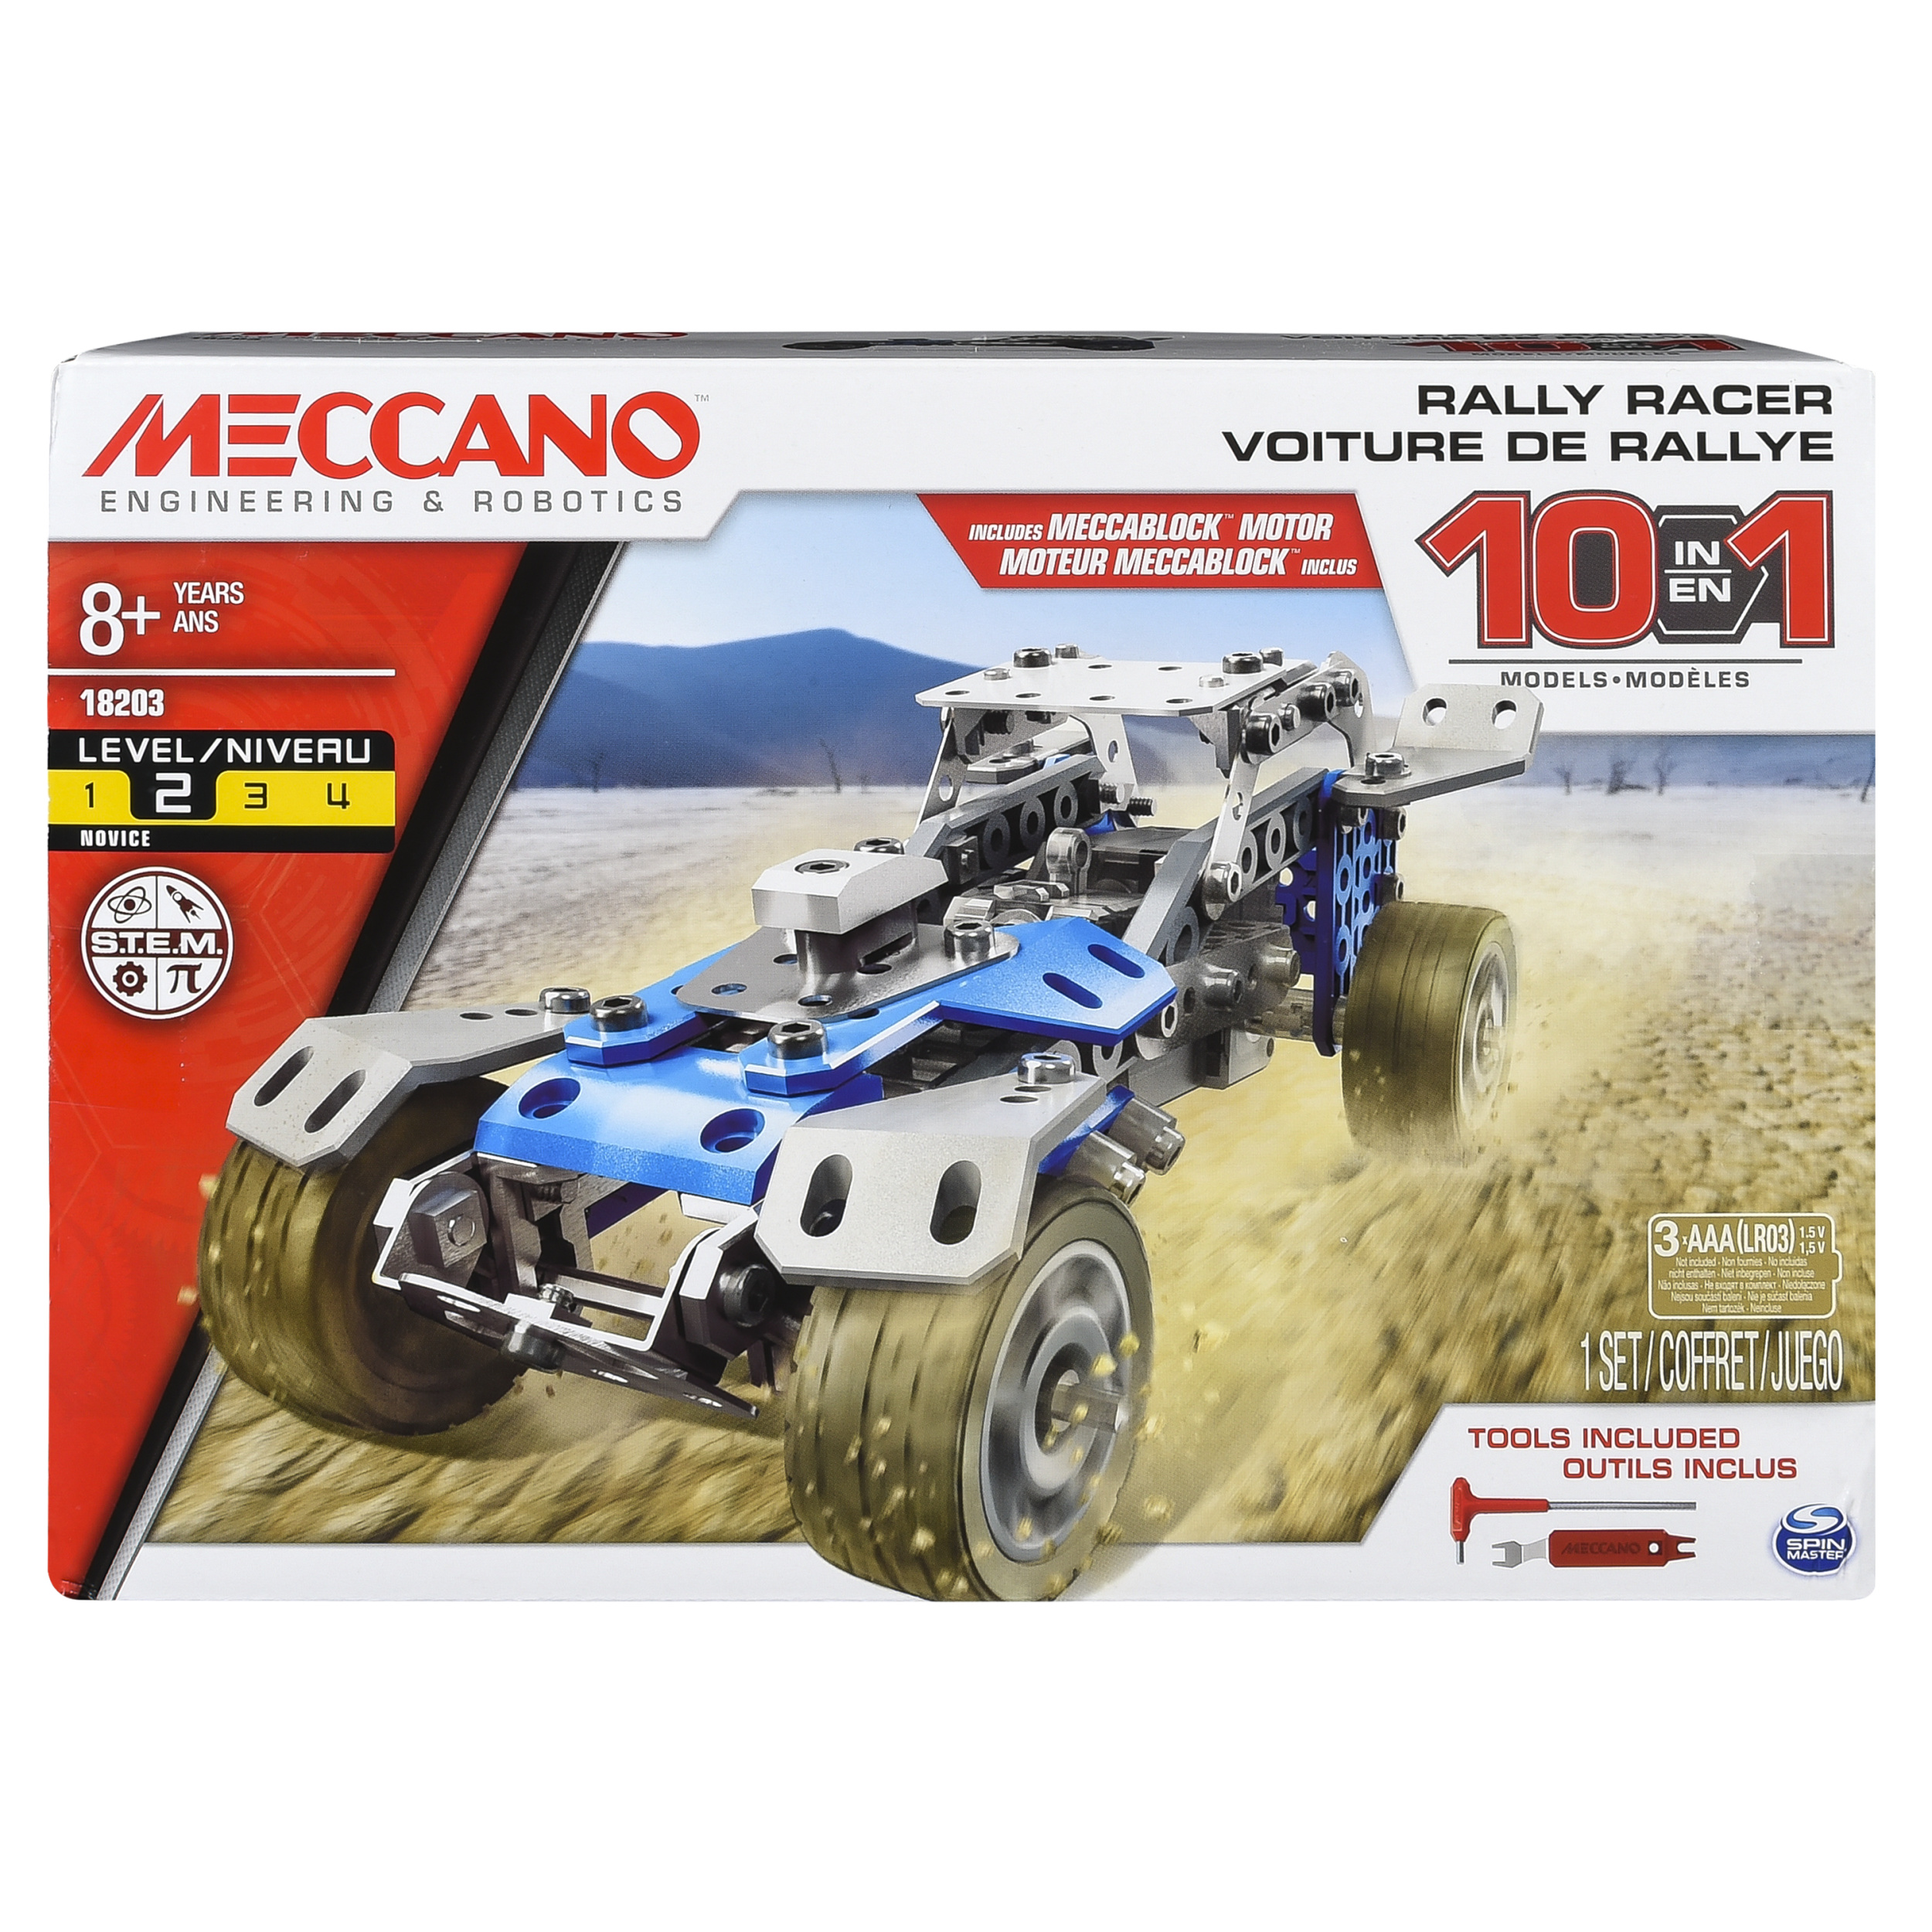 Erector by Meccano, 10 in 1 Rally Racer Model Vehicle Building Kit, for Ages 8 and up,... by Spin Master Ltd